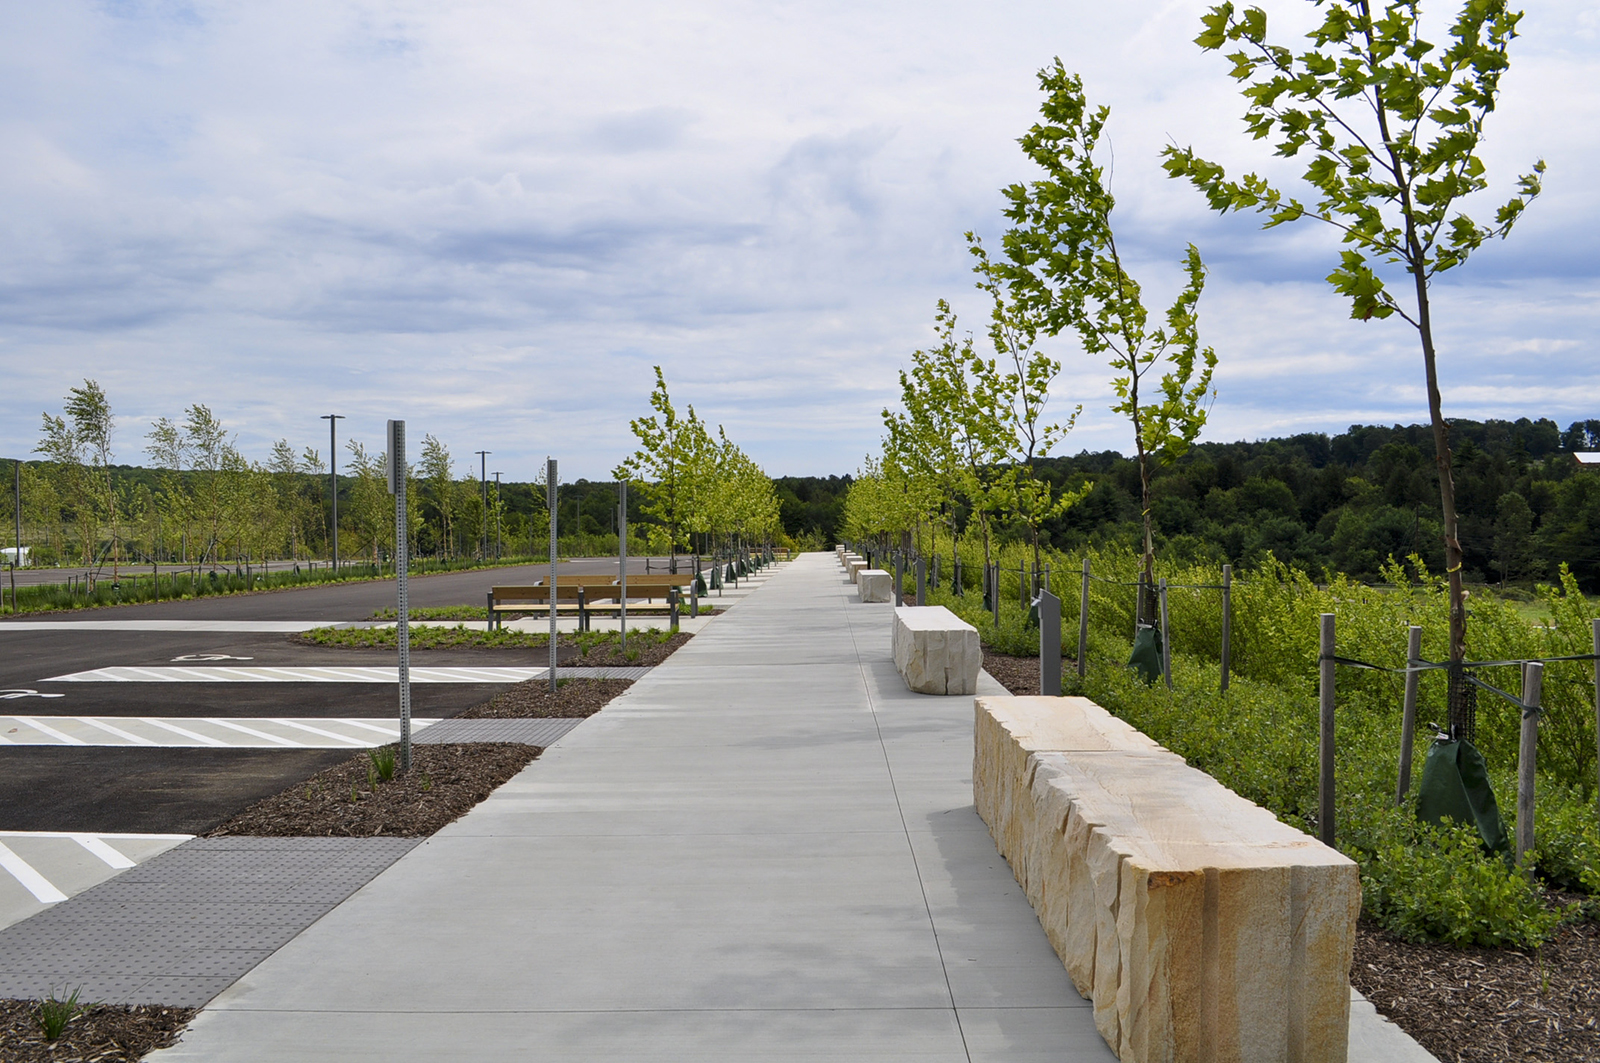 Flight 93 Memorial Benches